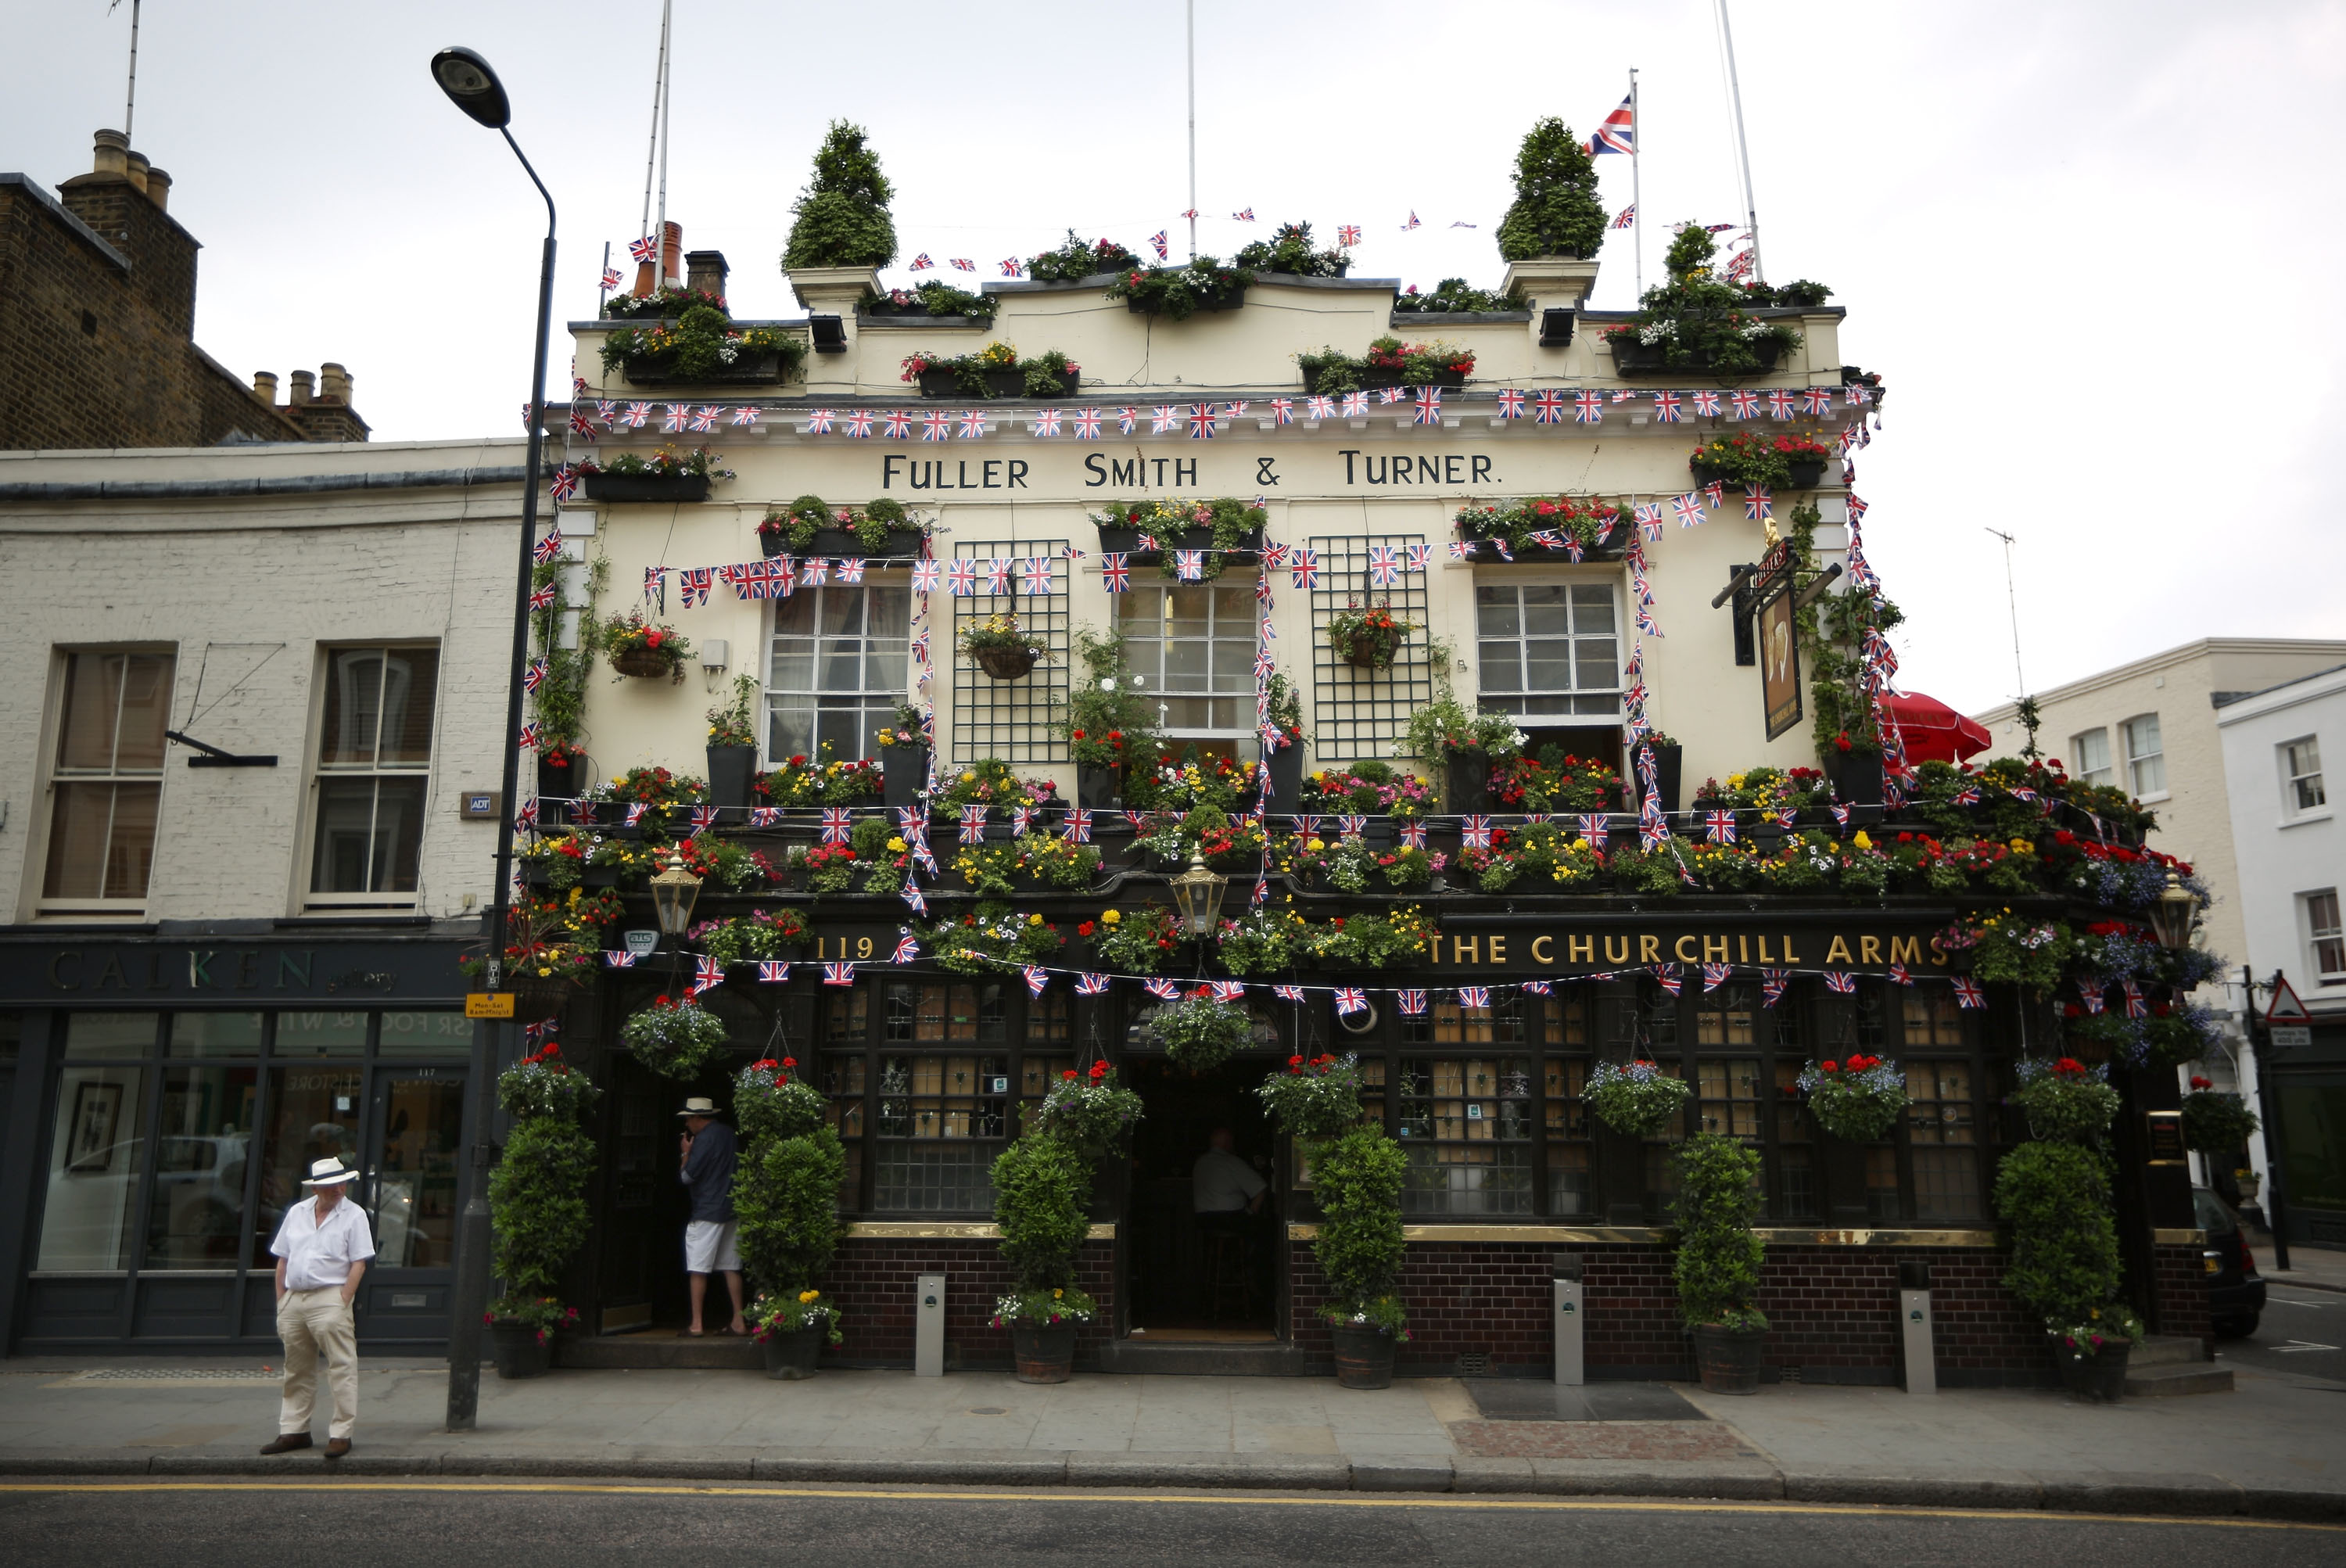 The Churchill Arms pub is decorated with Union Jack flags on May 29, 2012 in London, England.